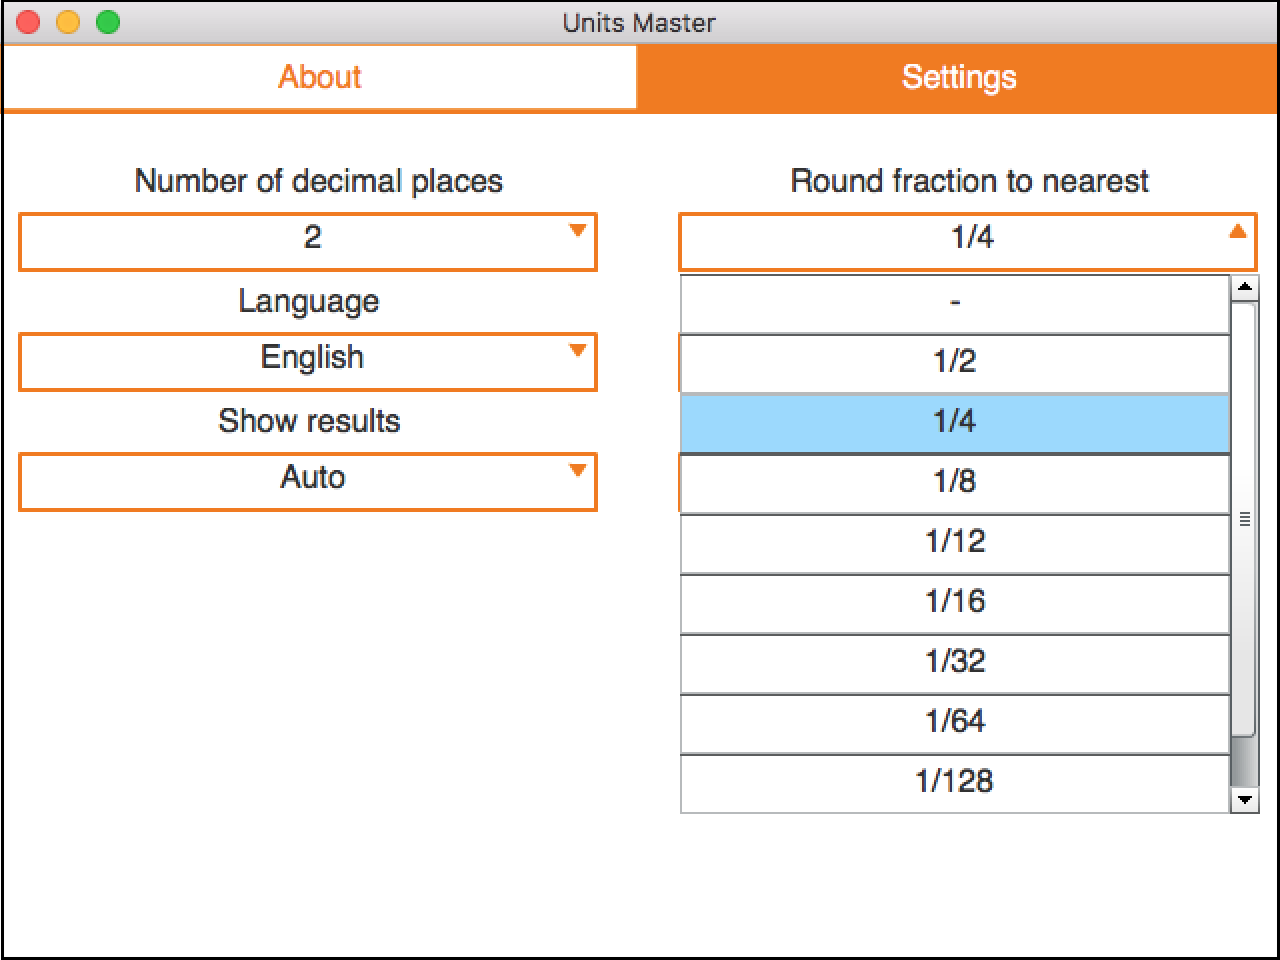 Rounding settings for fractions